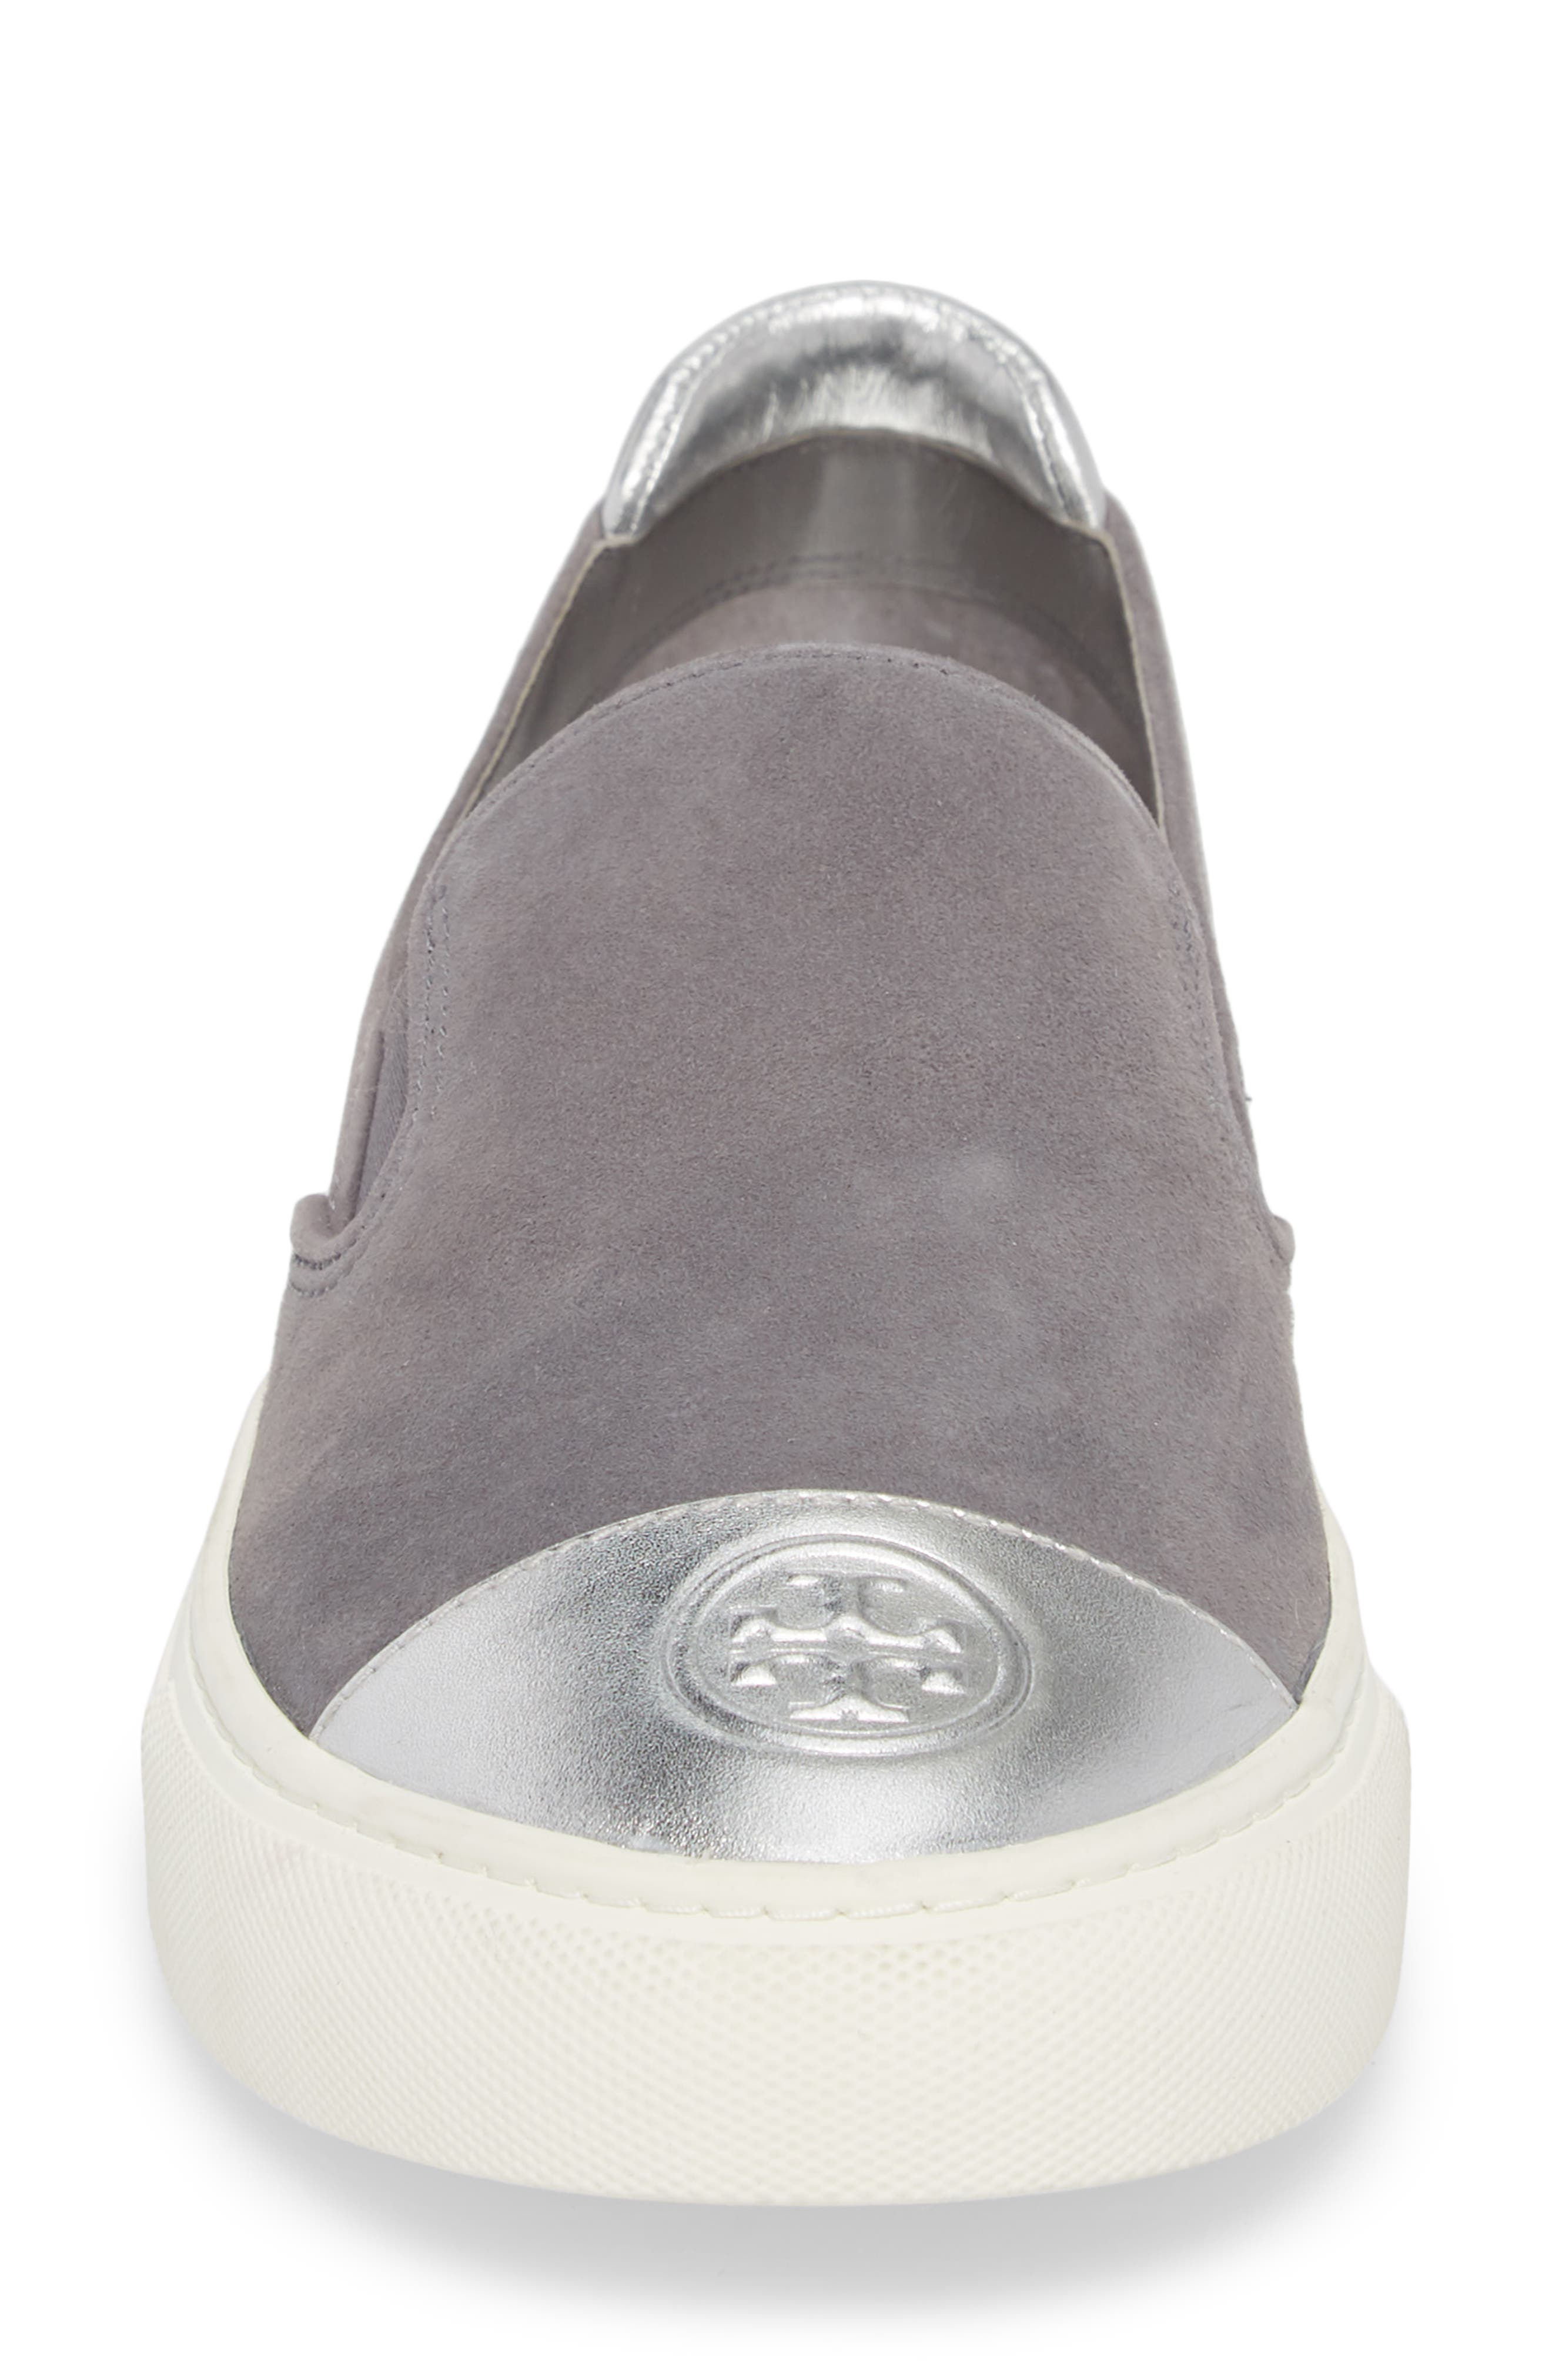 Colorblock Slip-On Sneaker,                             Alternate thumbnail 4, color,                             Carbon/ Silver